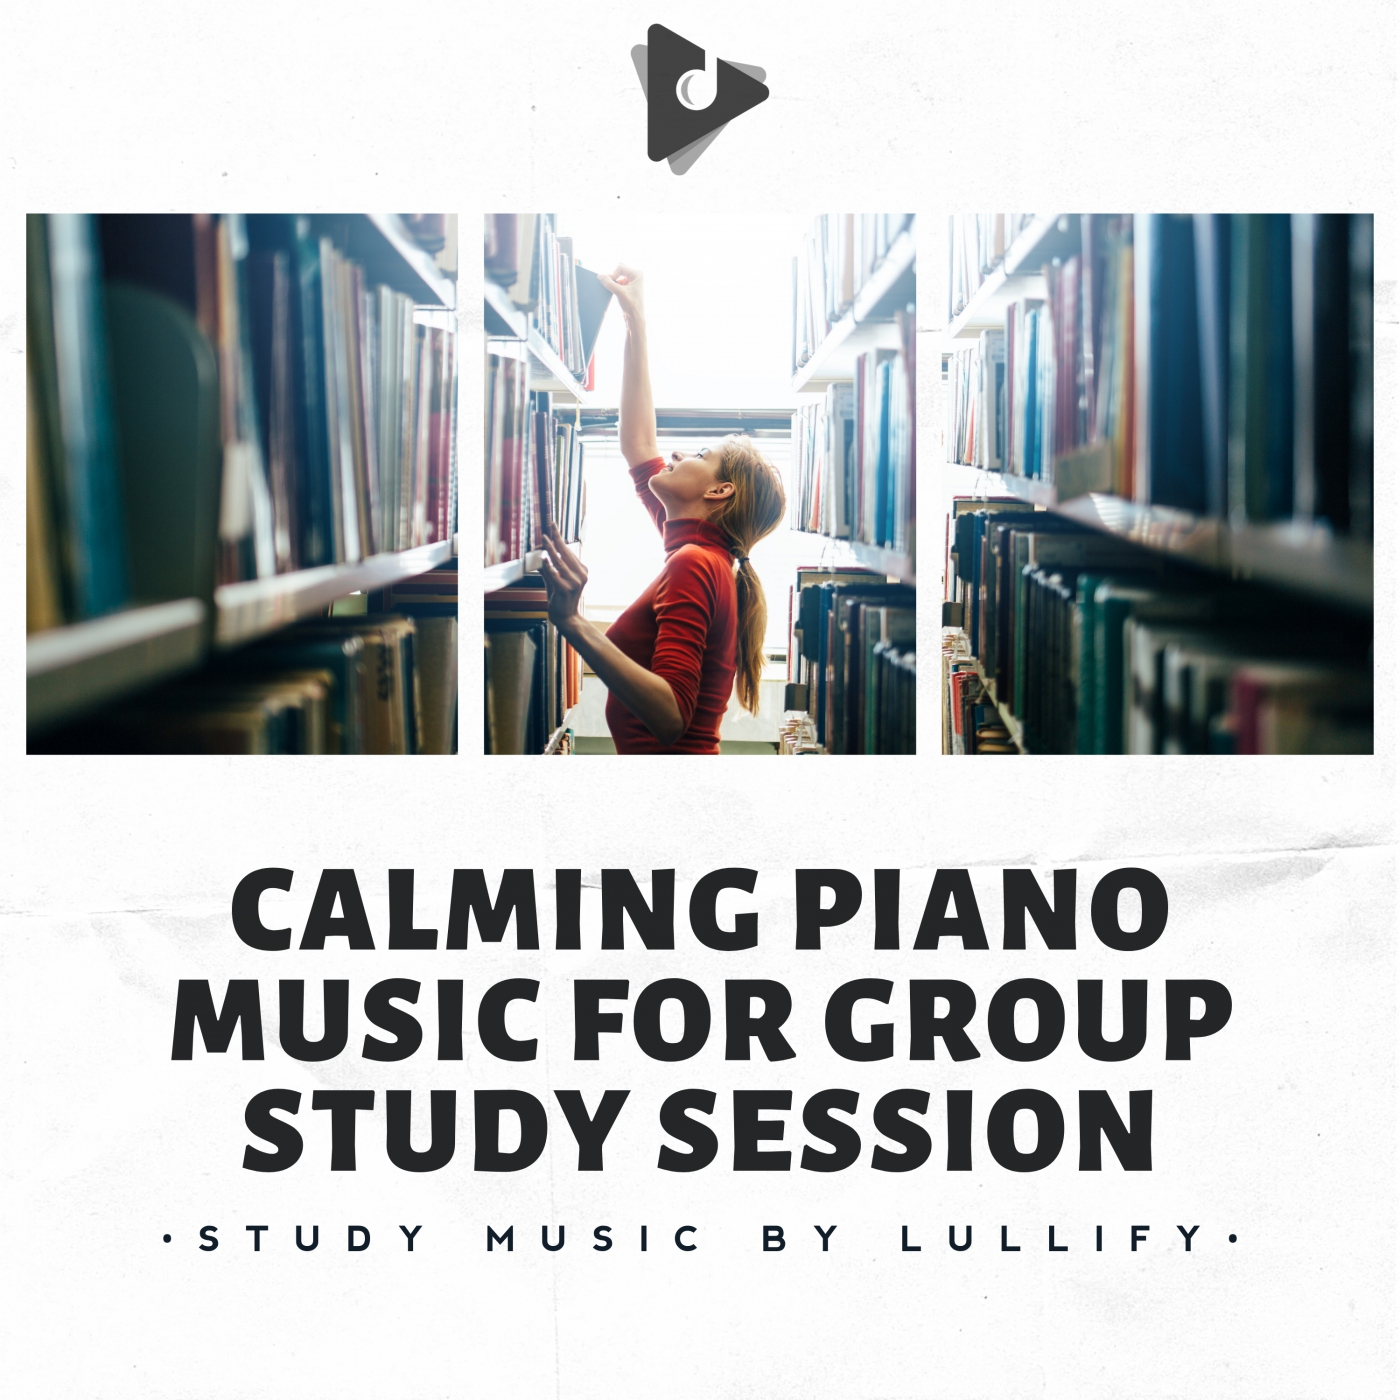 Calming Piano Music for Group Study Session